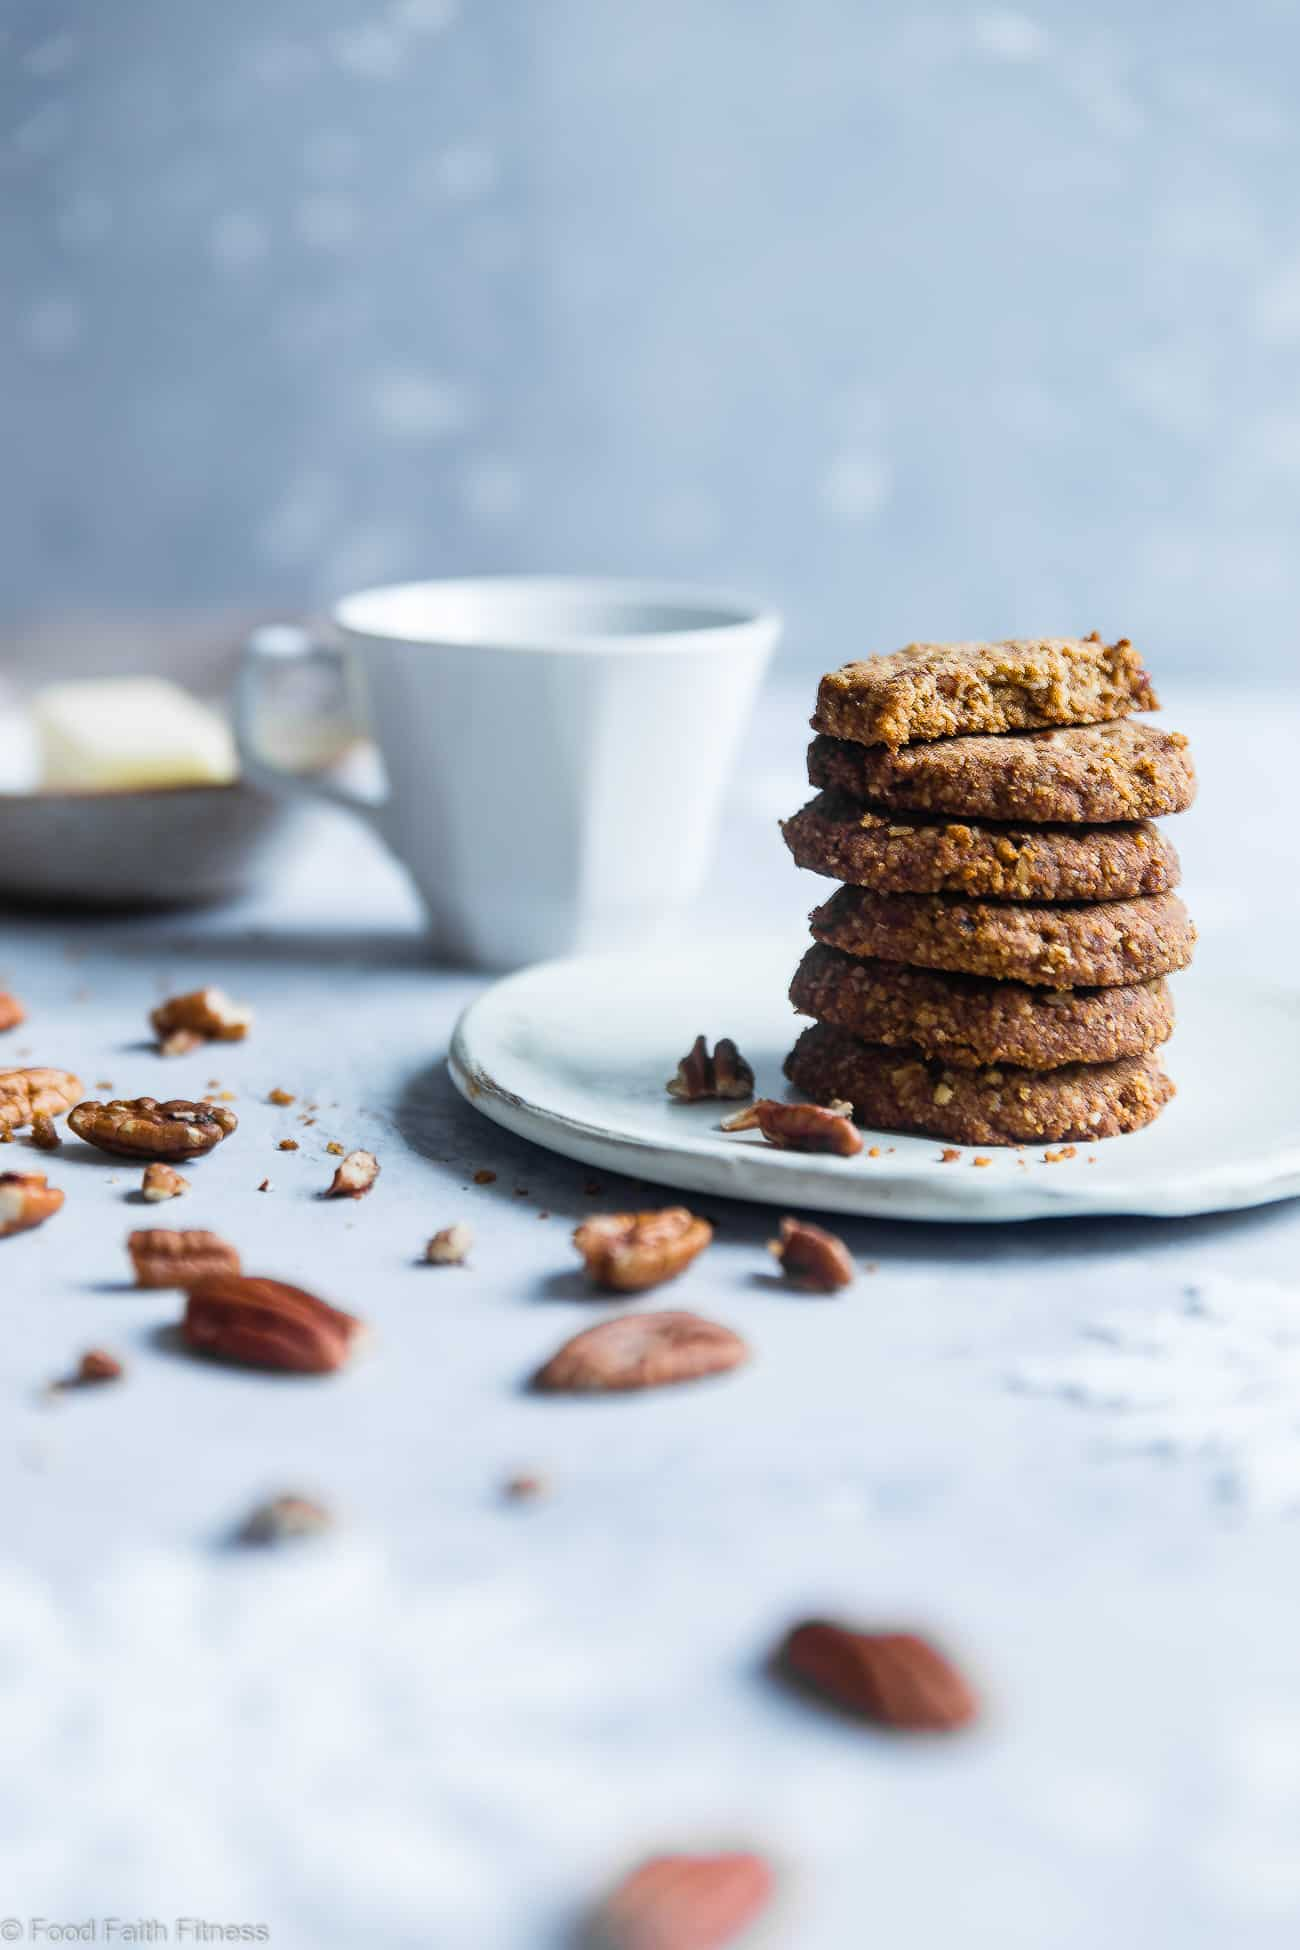 Brown Sugar Chewy Butter Pecan Cookies Recipe -These 6 ingredient, gluten freecookies with pecans are perfectly crisp on the outside and chewy on the inside! A paleo and vegan friendly, dairy-free treat for the holidays! | Foodfaithfitness.com | @FoodFaithFit